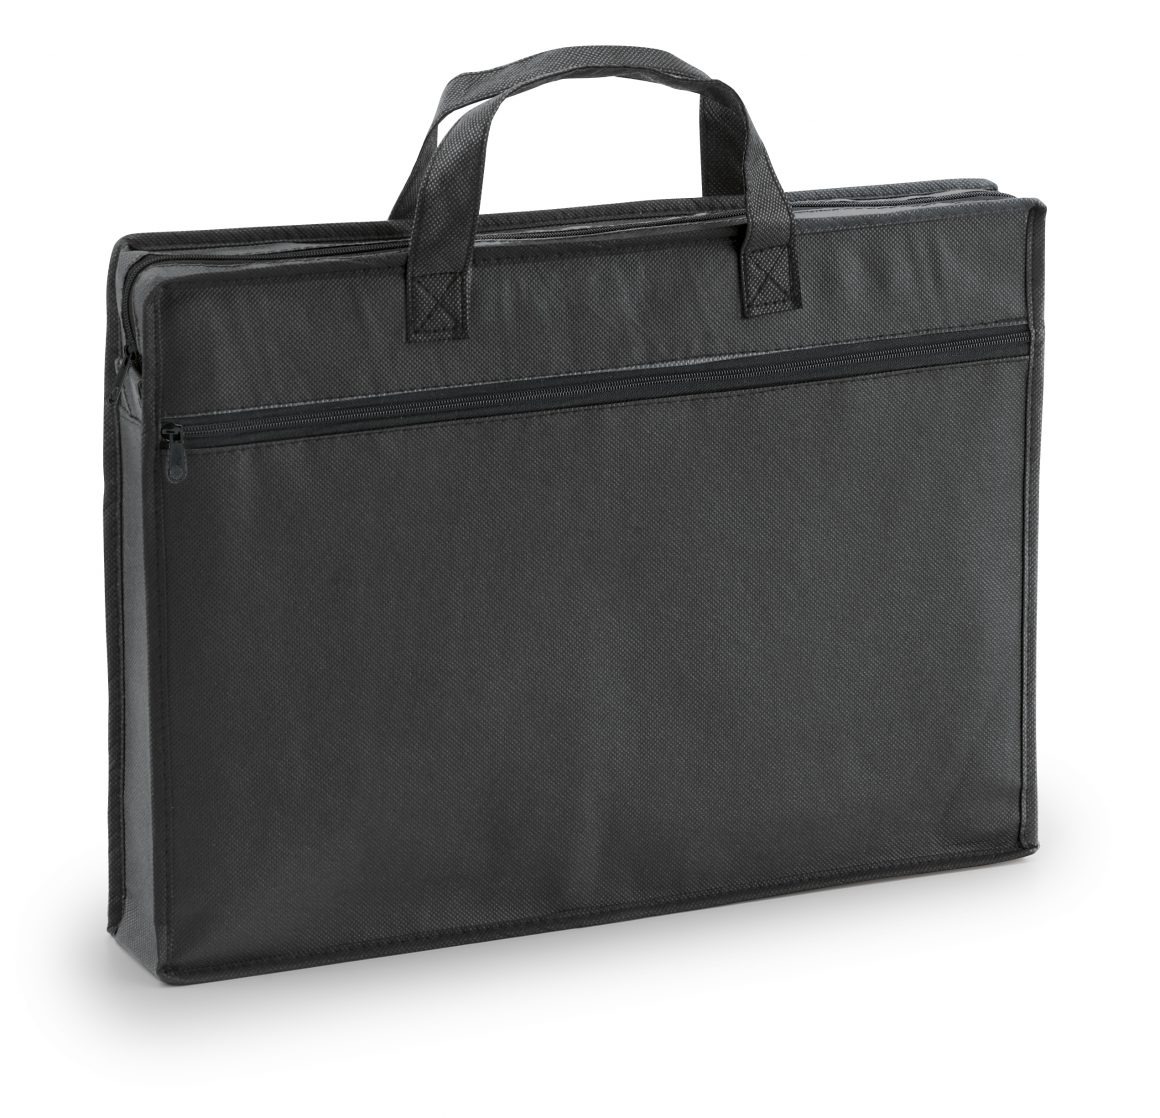 Cenal Eco-friendly Document Bag Product Code GP92228